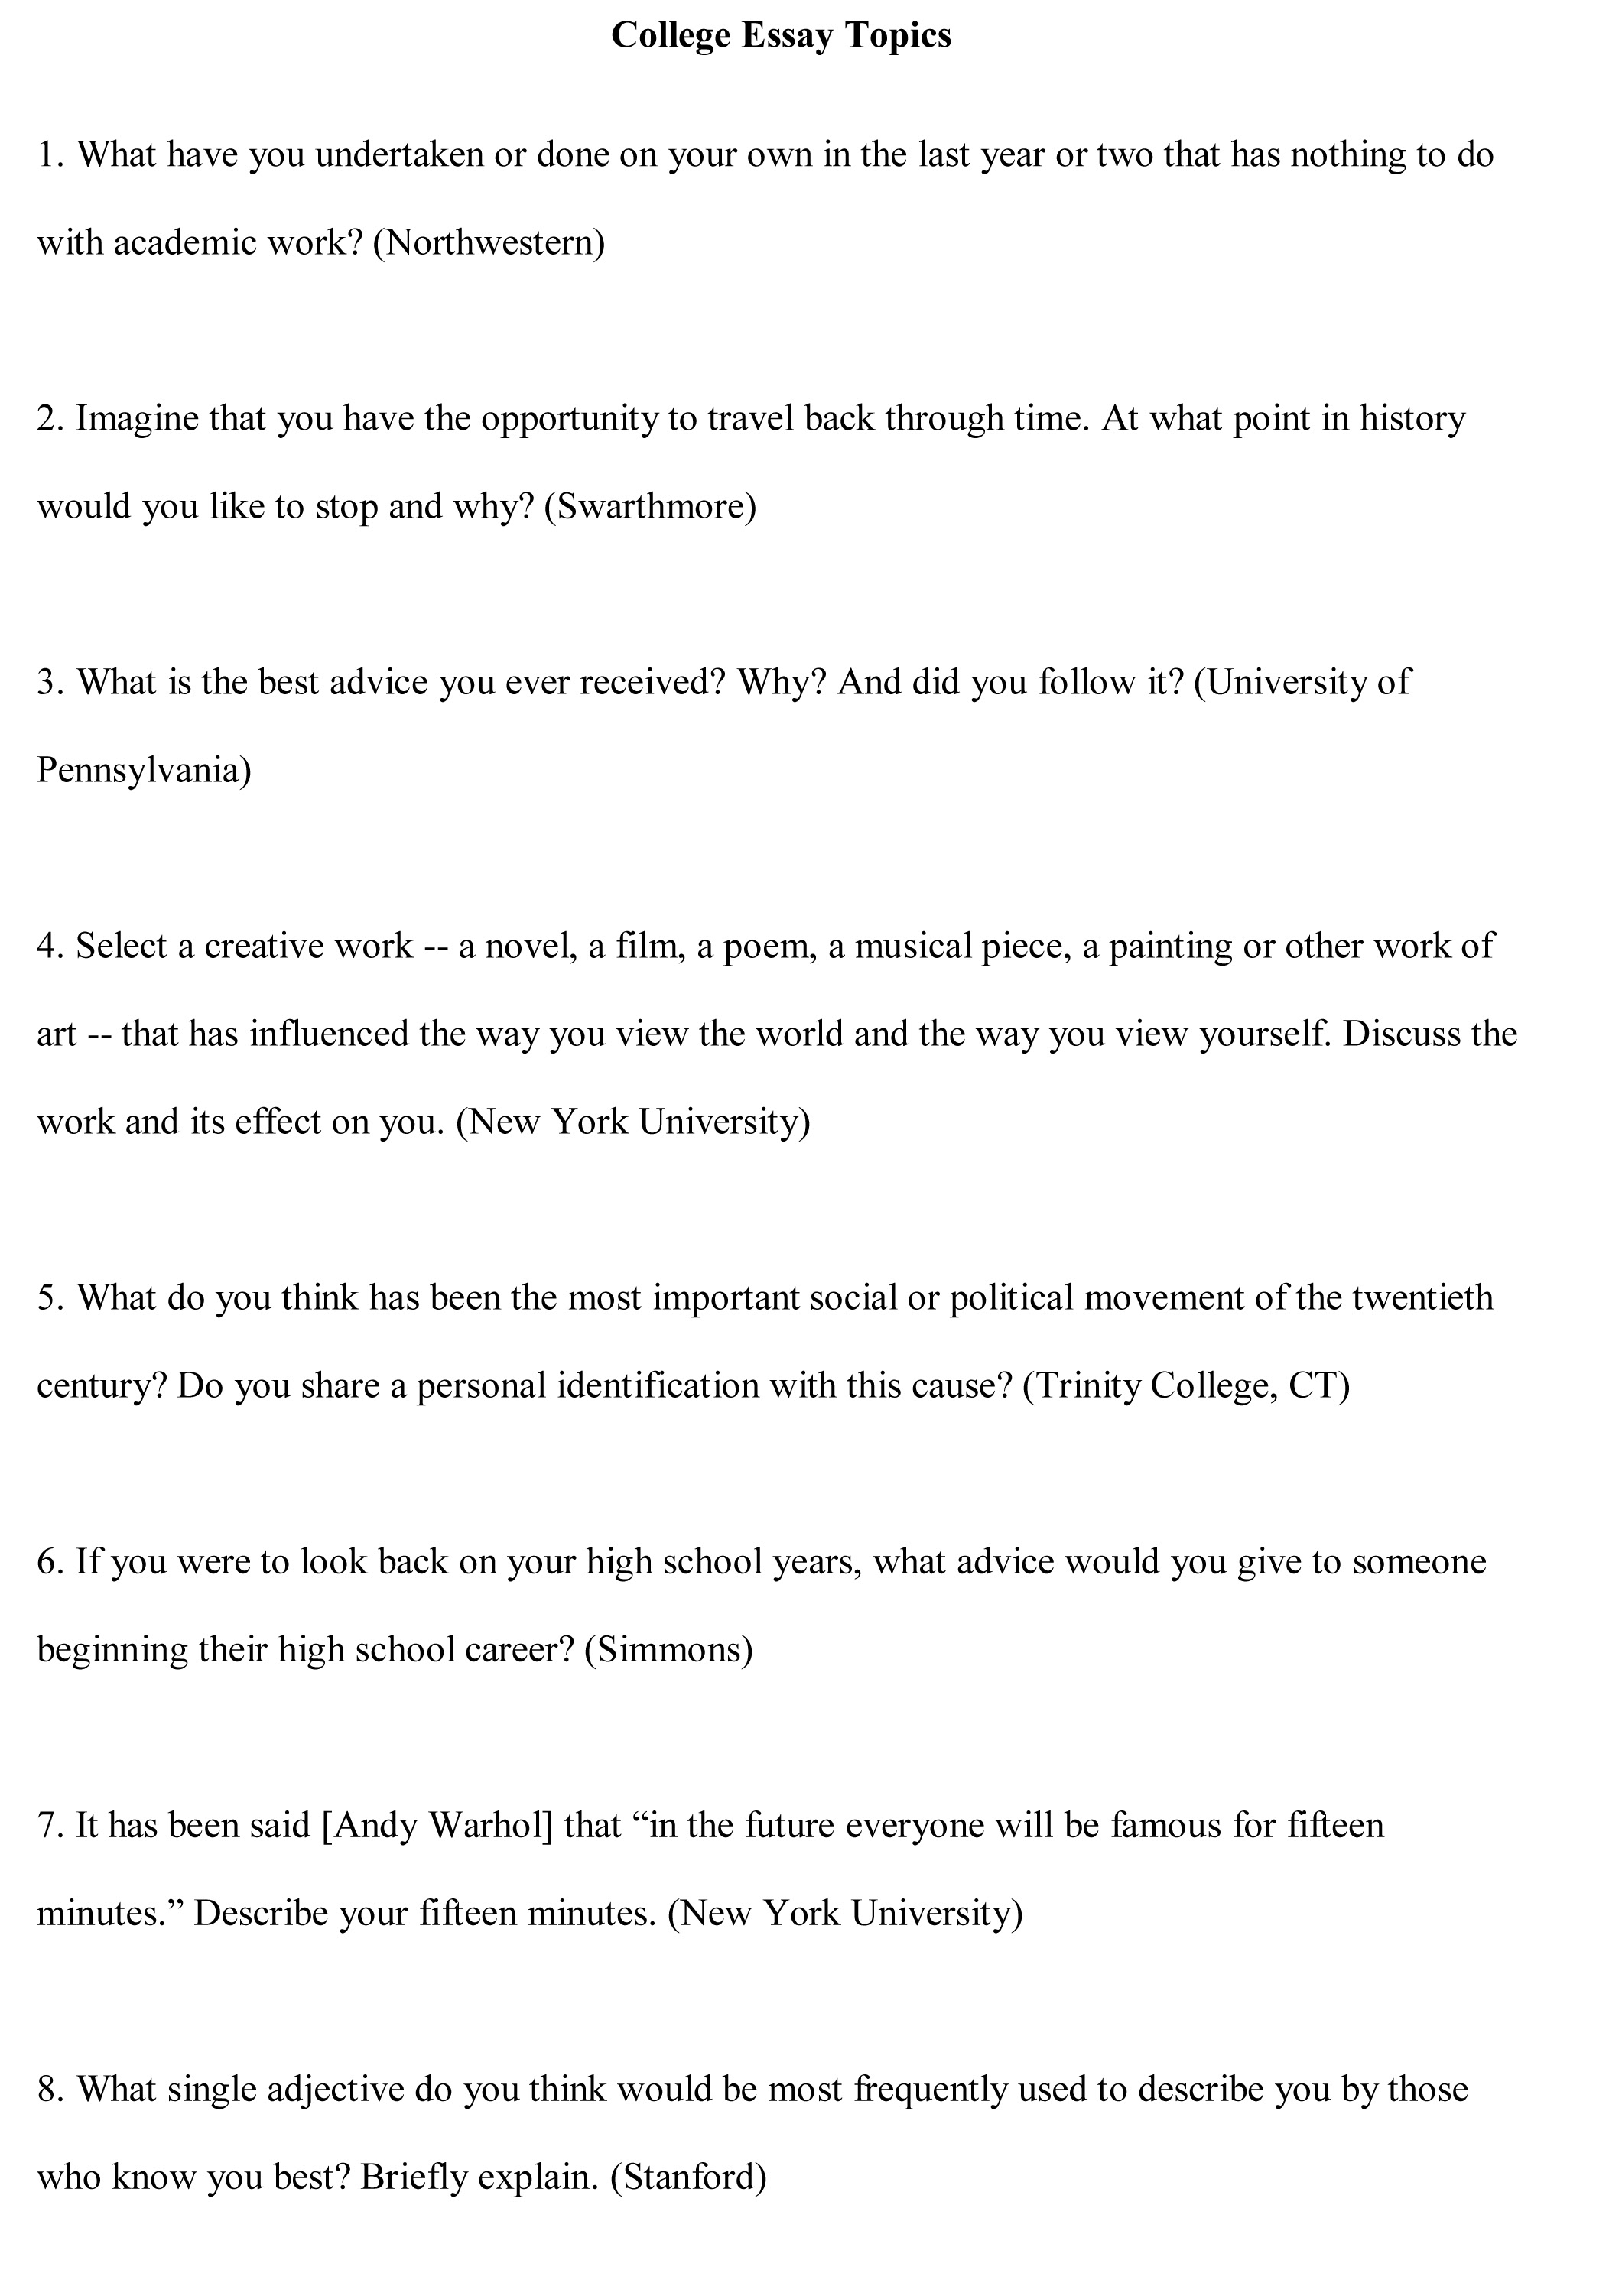 topics to write about in a college essay